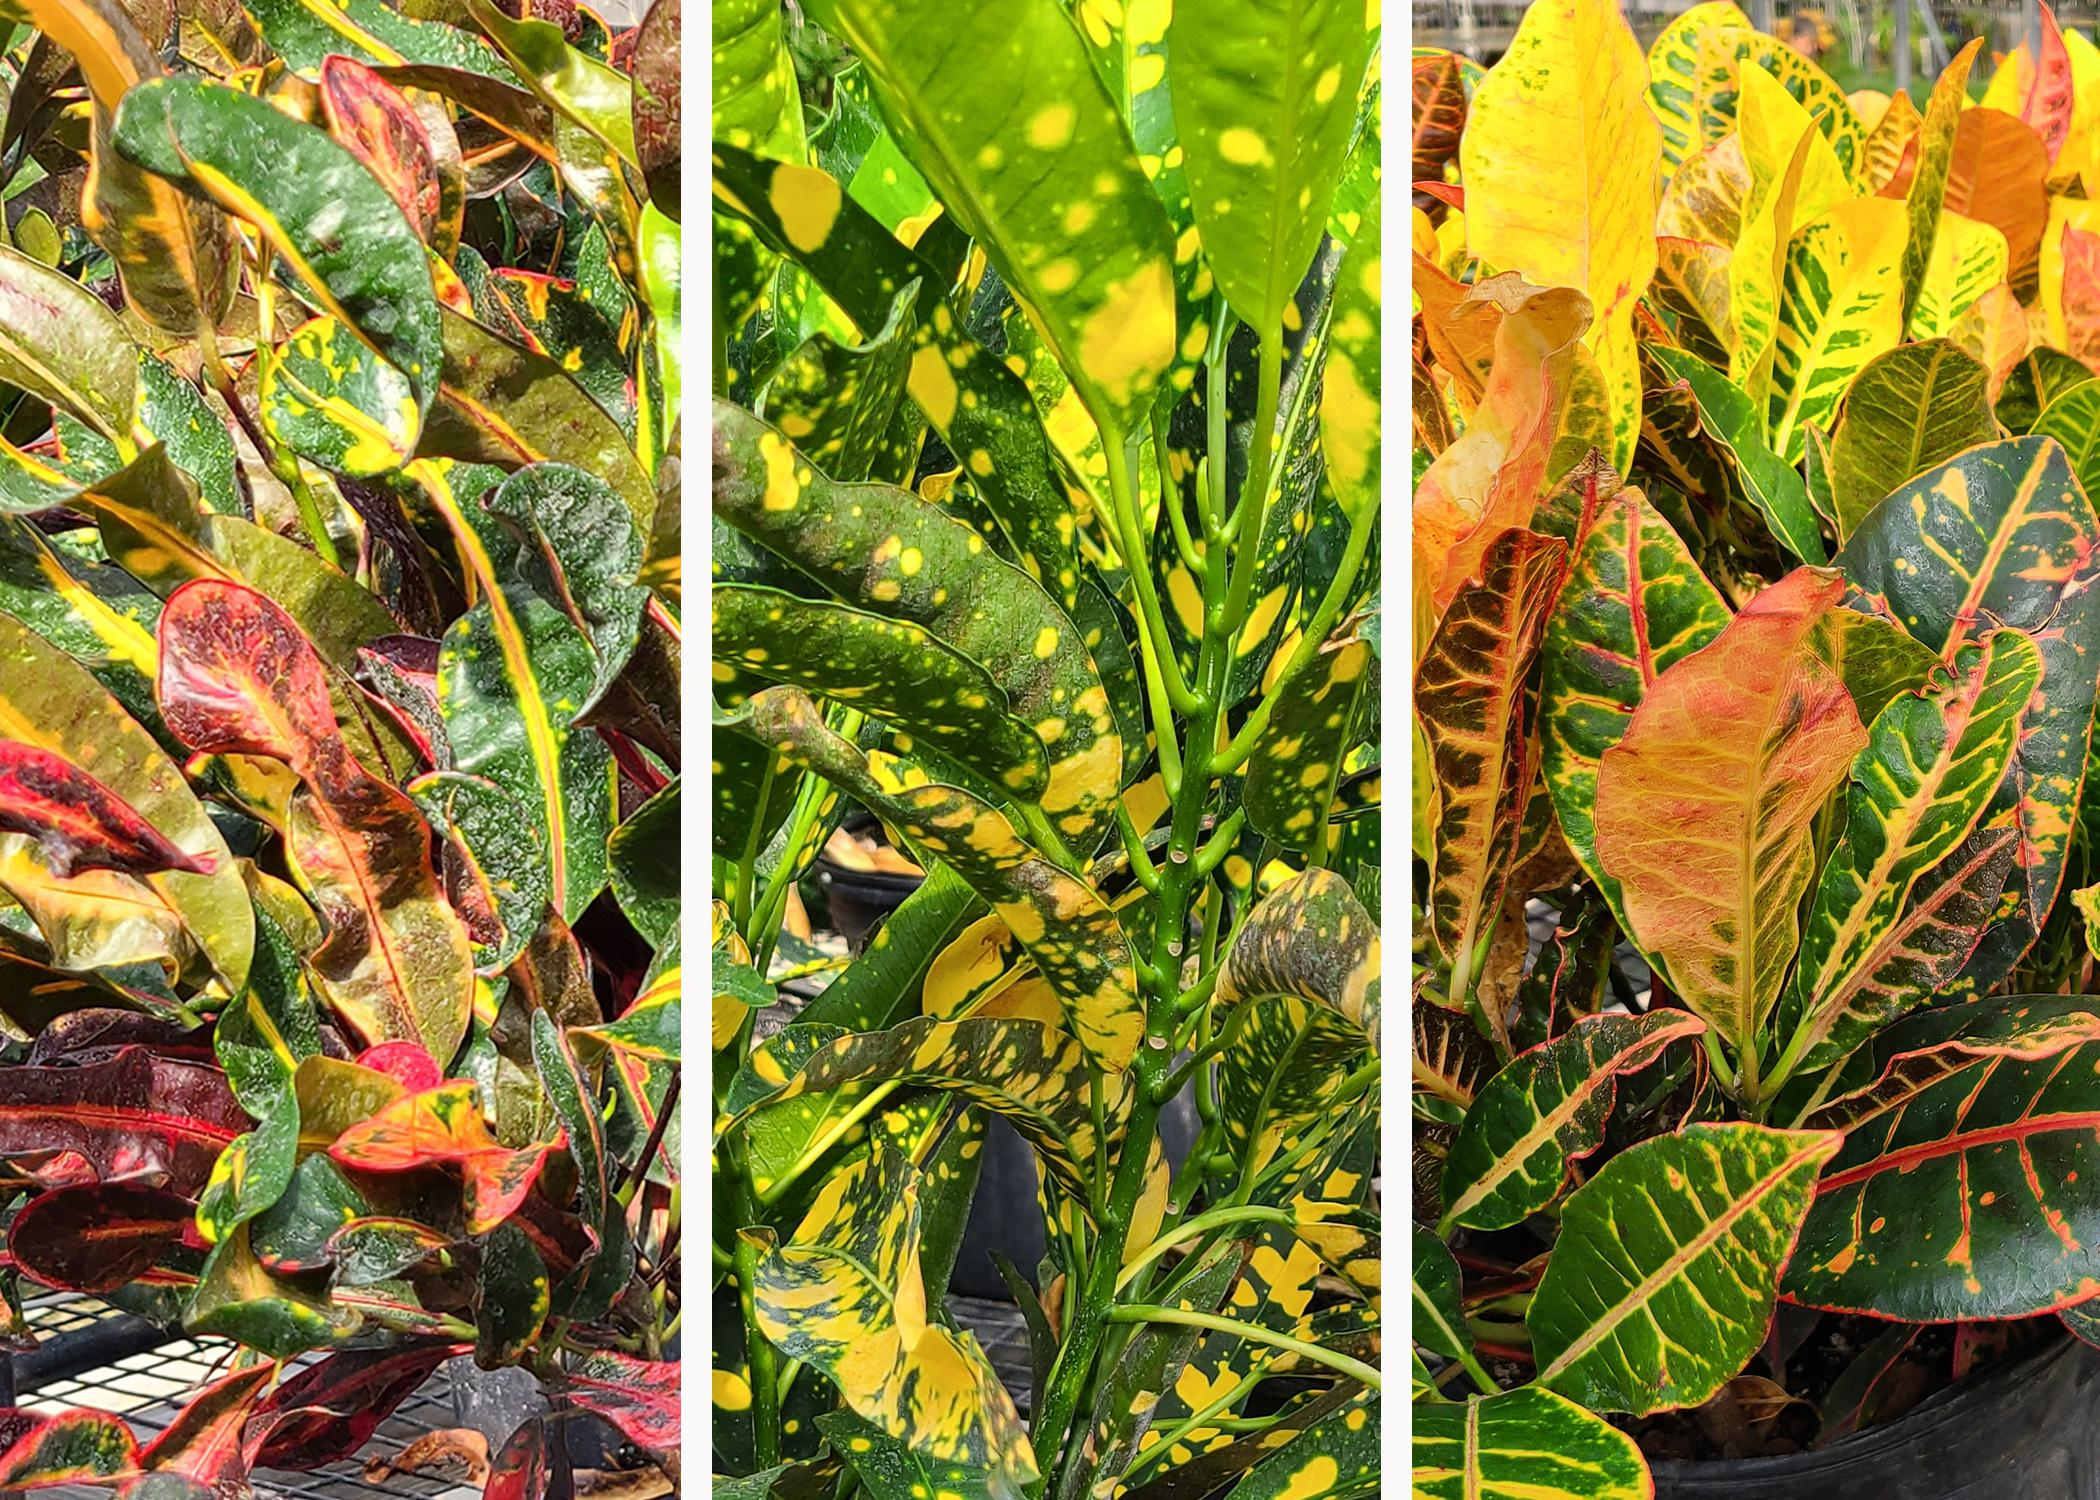 Three panels display colorful green, yellow and purple foliage.